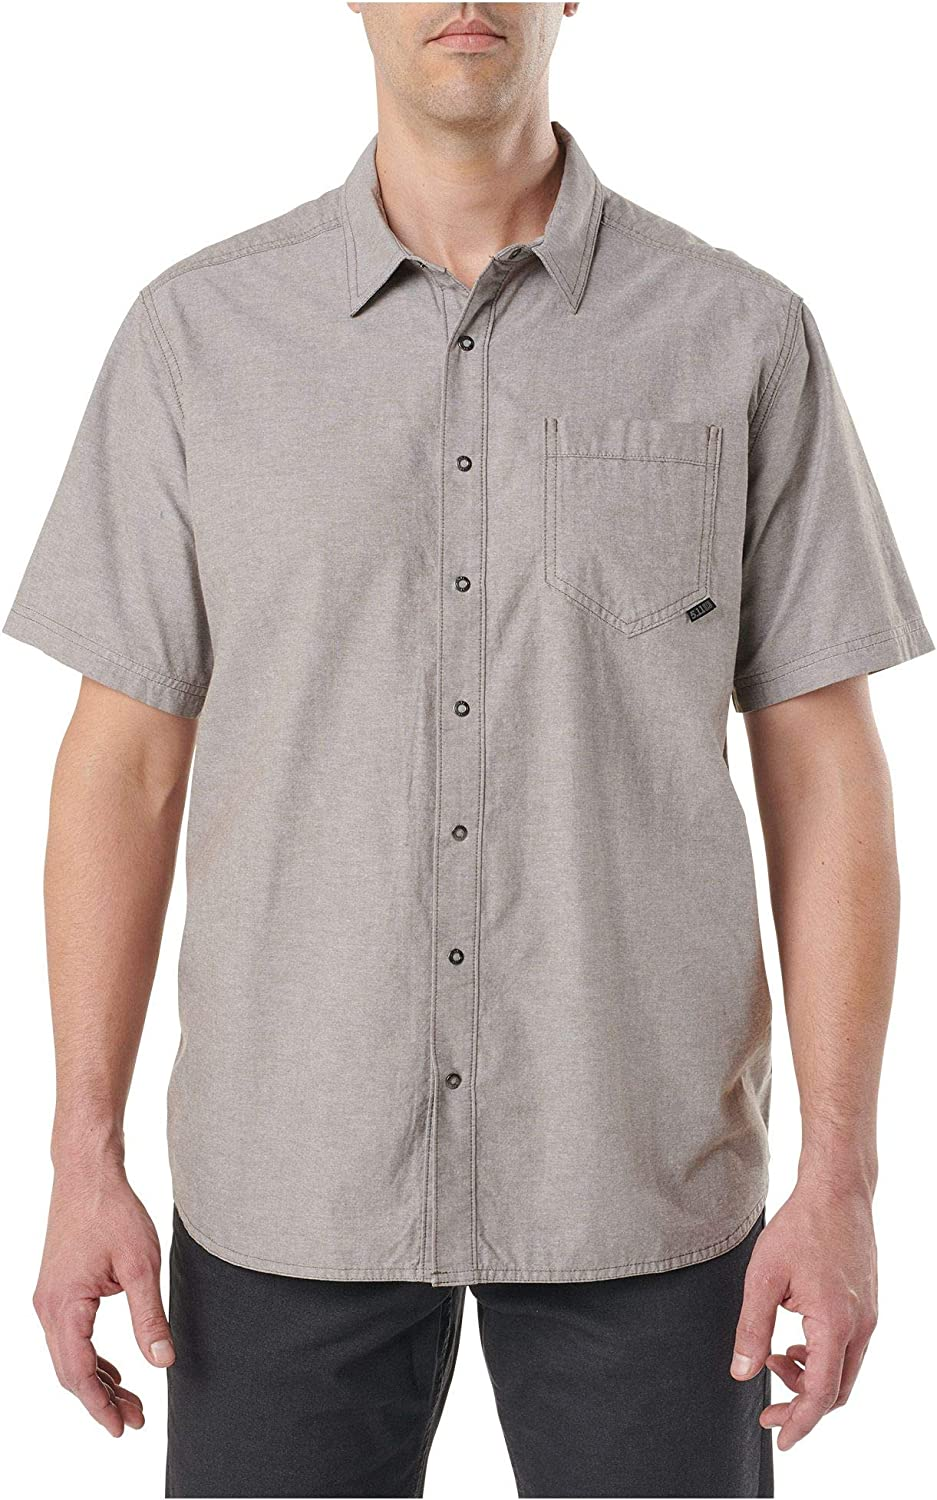 5.11 Tactical Men's Cotton Button-Down Ares Short Sleeve Button-Up Shirt,Style 71372